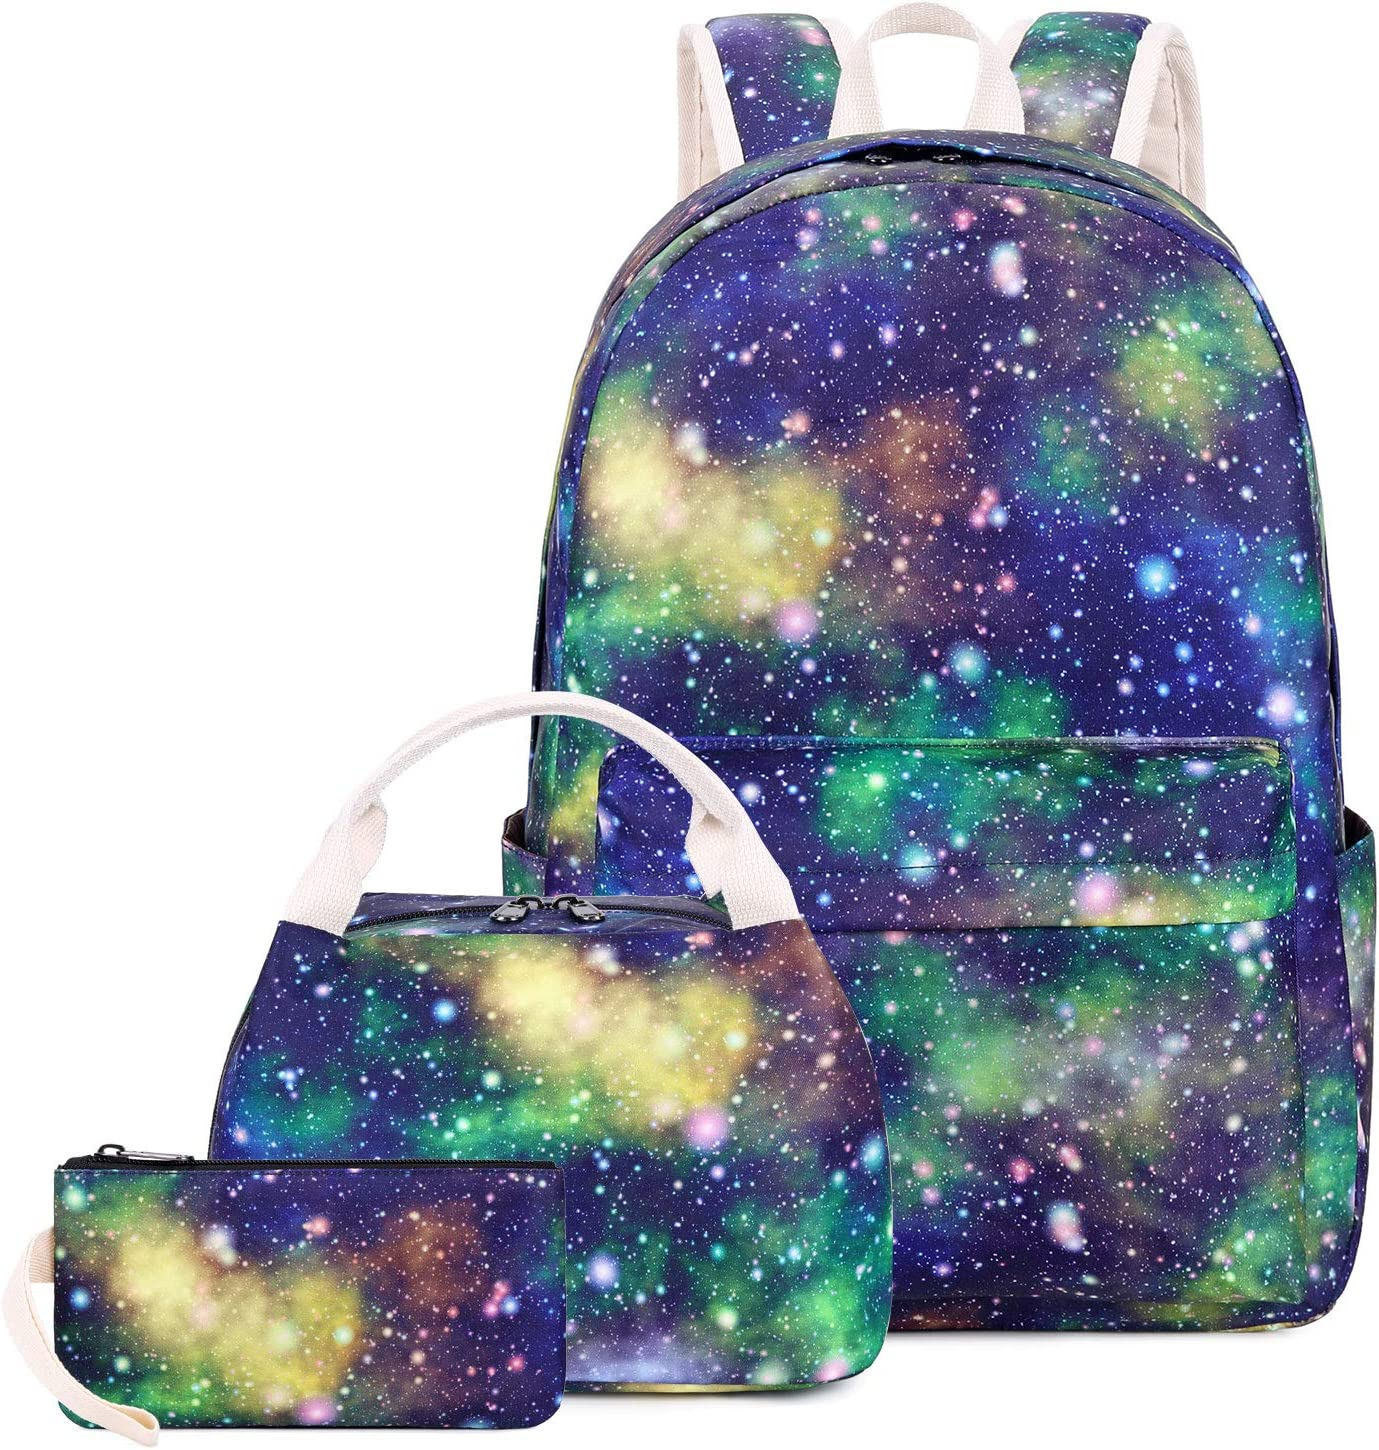 "Blue Galaxy backpack Set for Boys and Girls, Waterproof School Bookbag Fits 14"" Laptop Backpack Daypack with Lunch Box and Pencil Case"